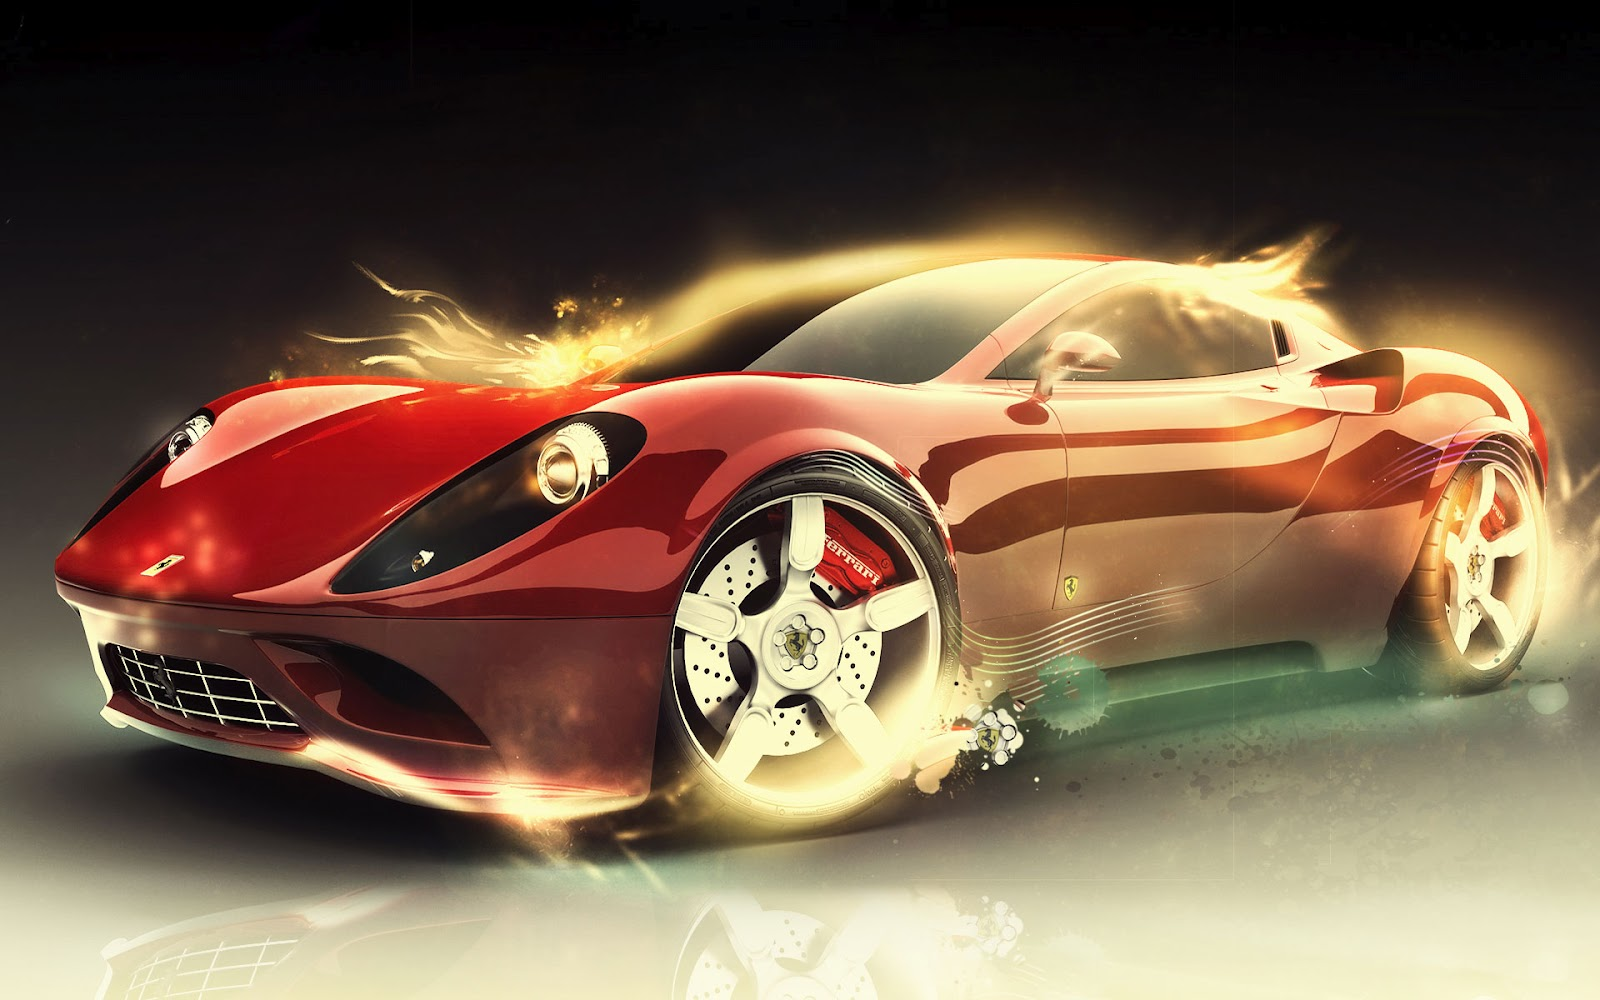 Ferrari Wallpapers « FREE WALLPAPERS